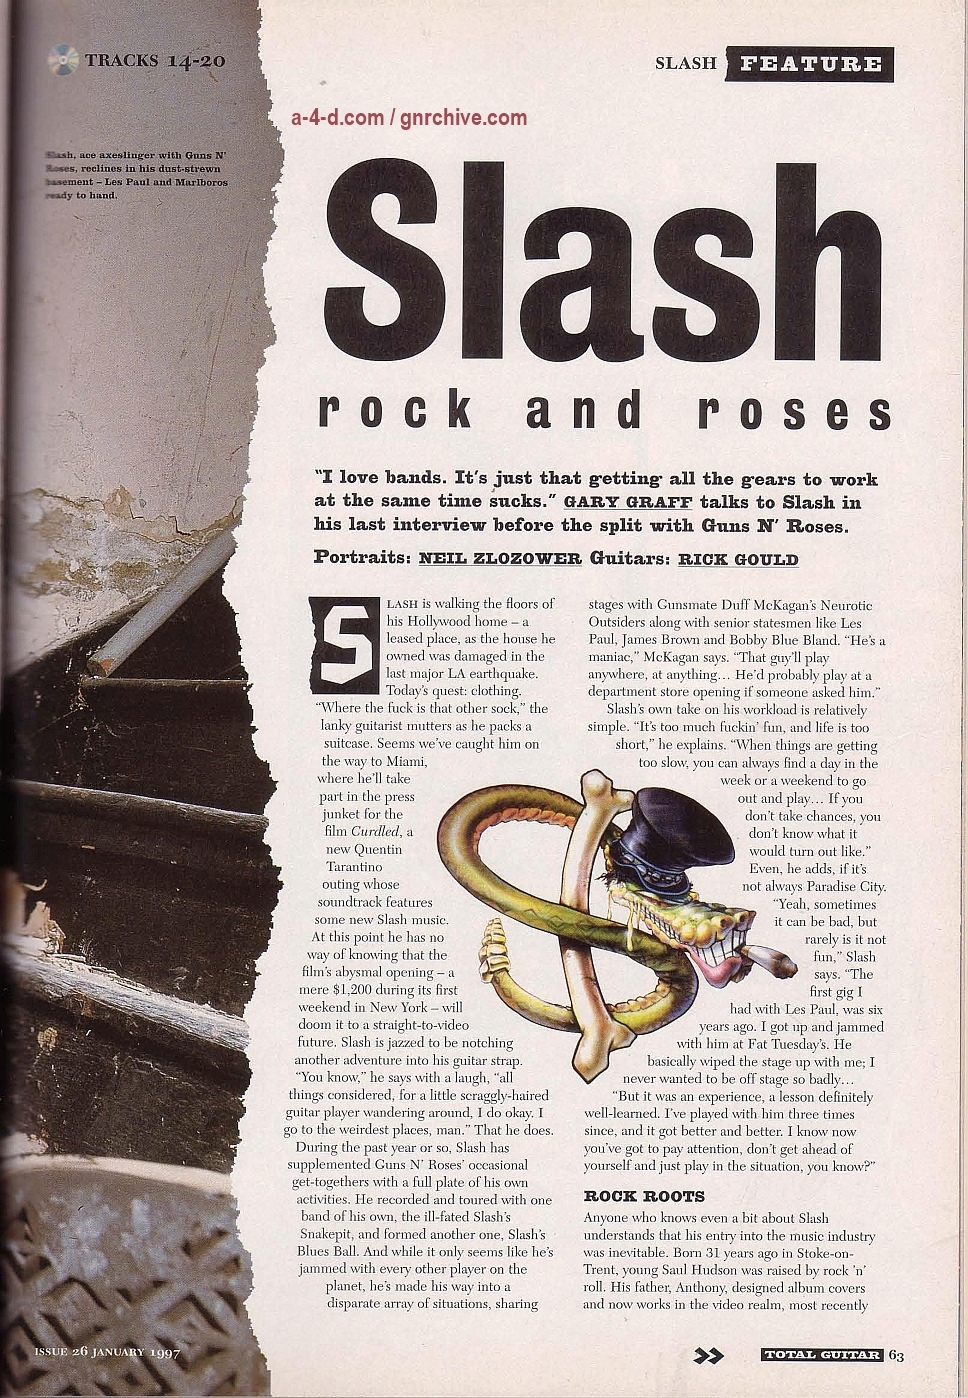 1997.01.DD - Total Guitar - Rock and Roses (Slash) 1997-014